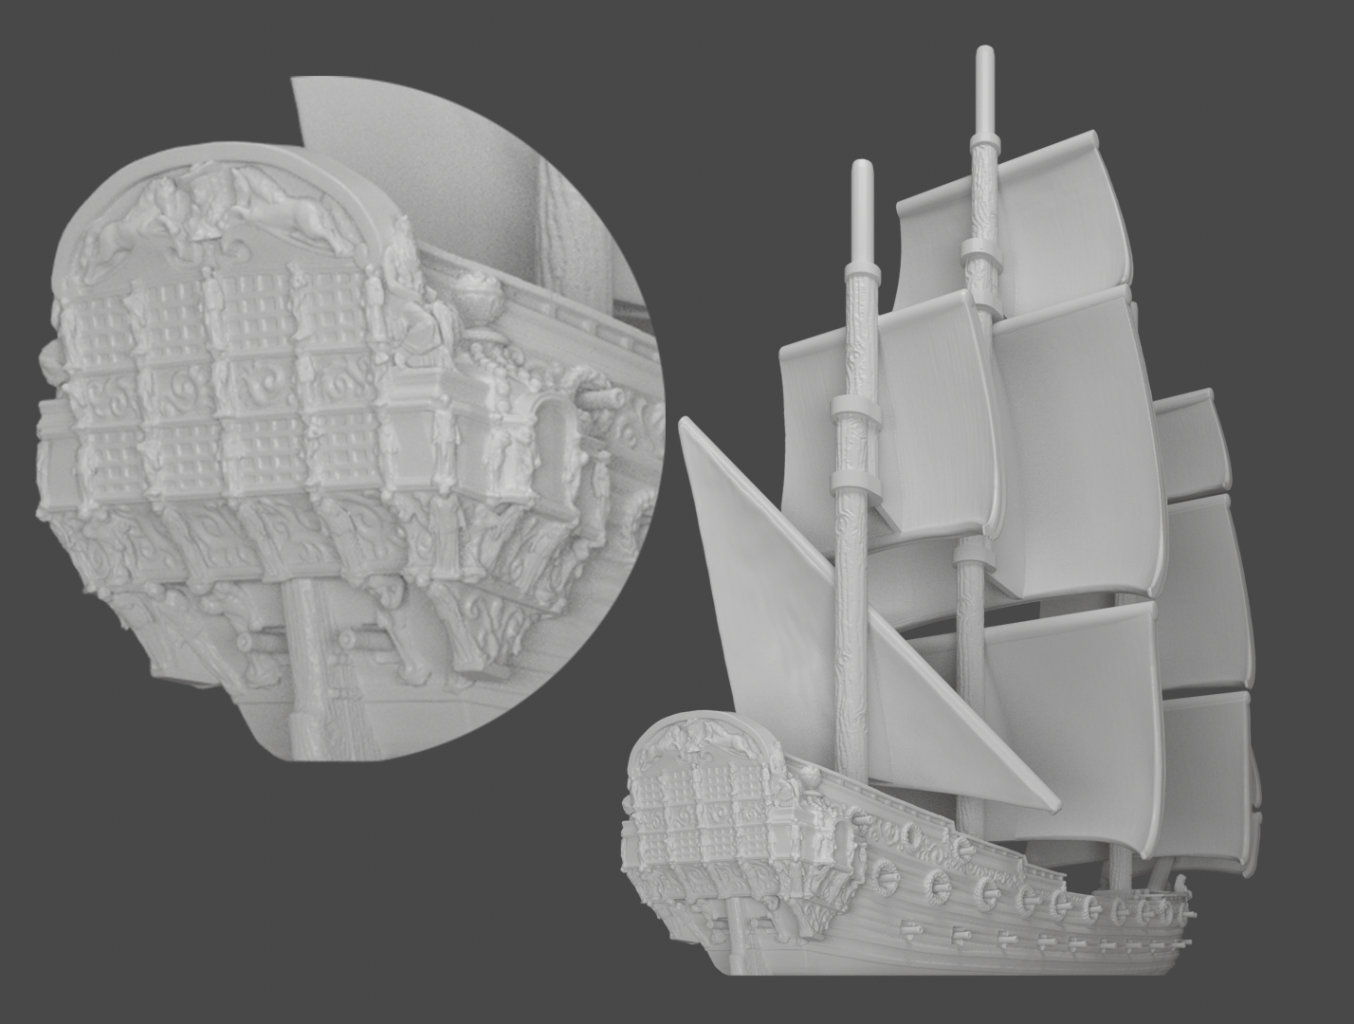 Oak & Iron 4th Rate Ship Preview Image - Rear of the Ship